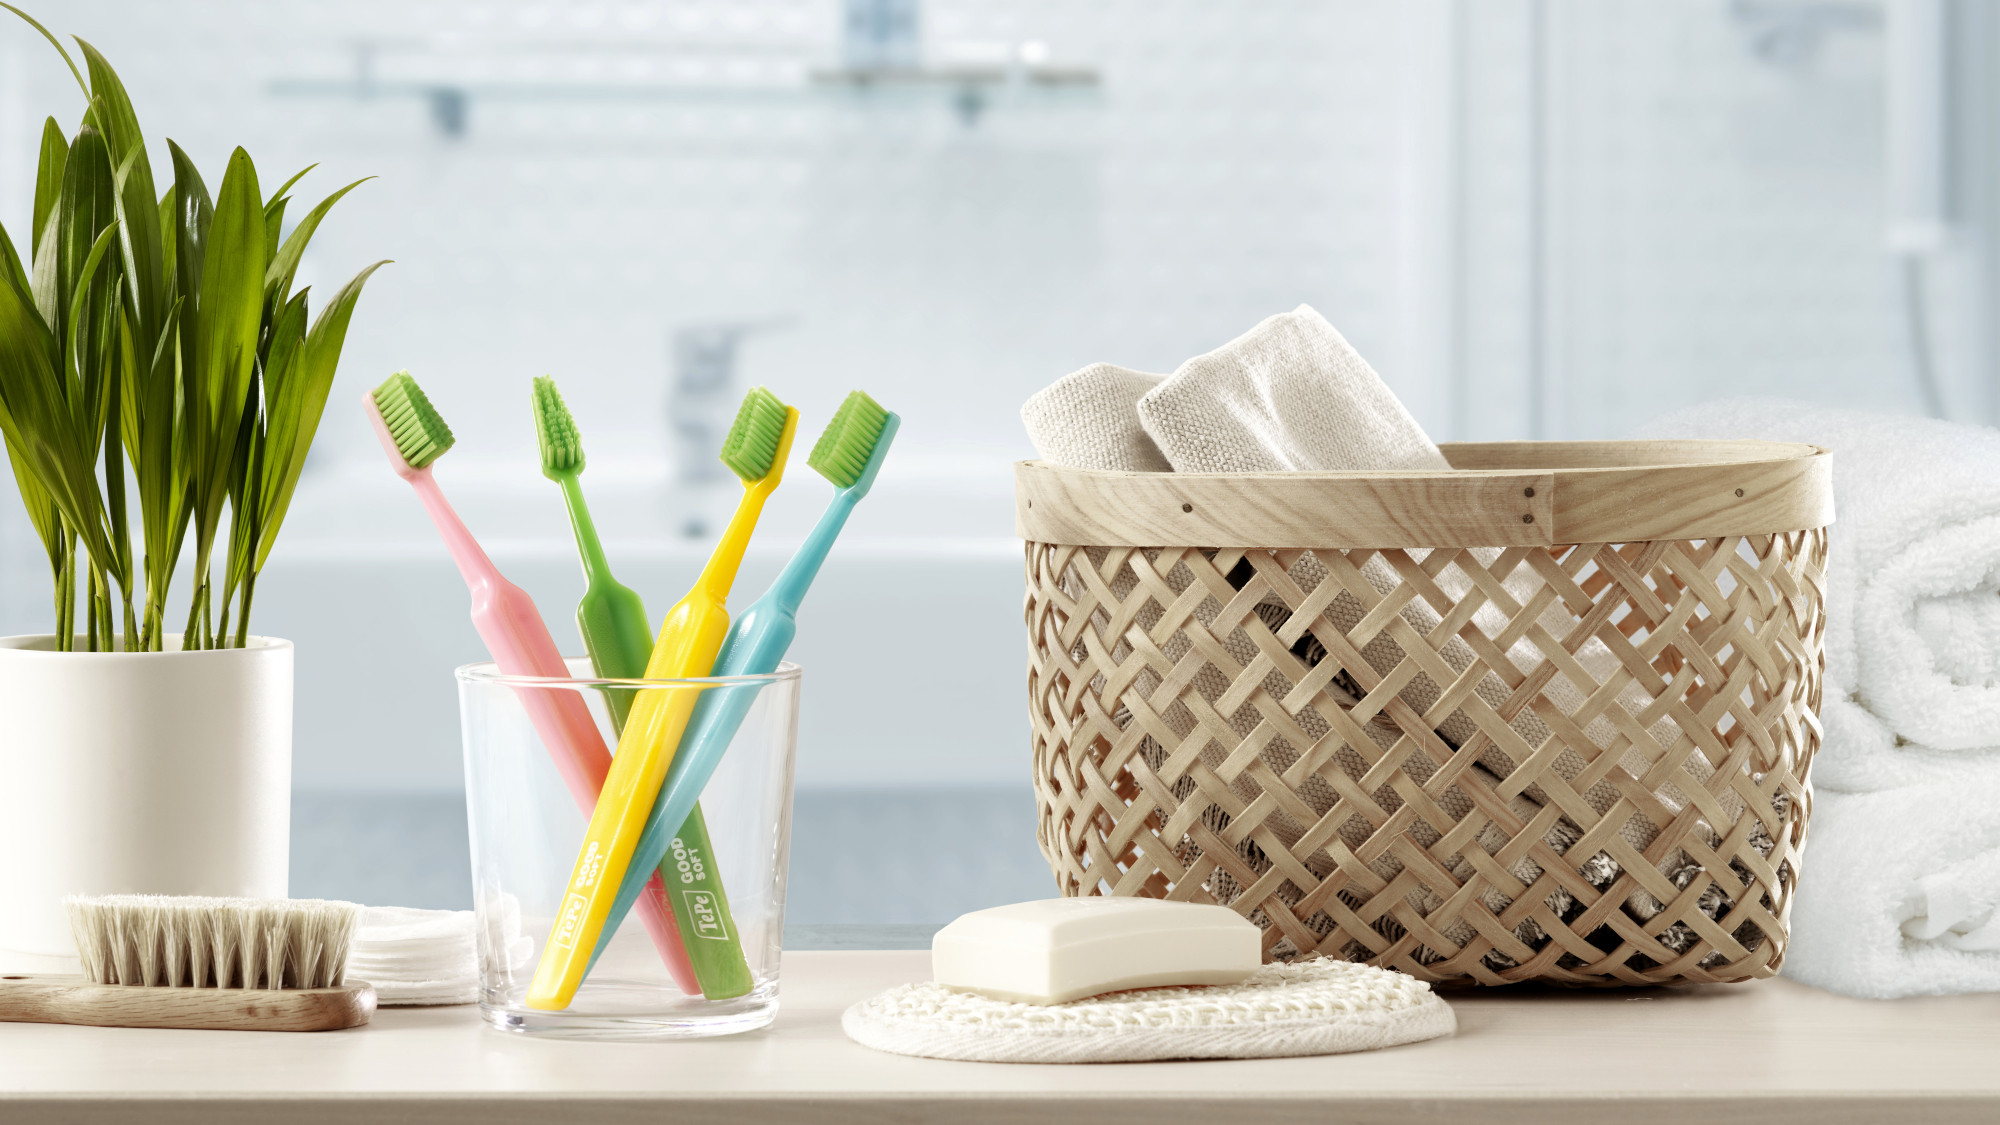 Designing for the environment—sustainability in plastic products